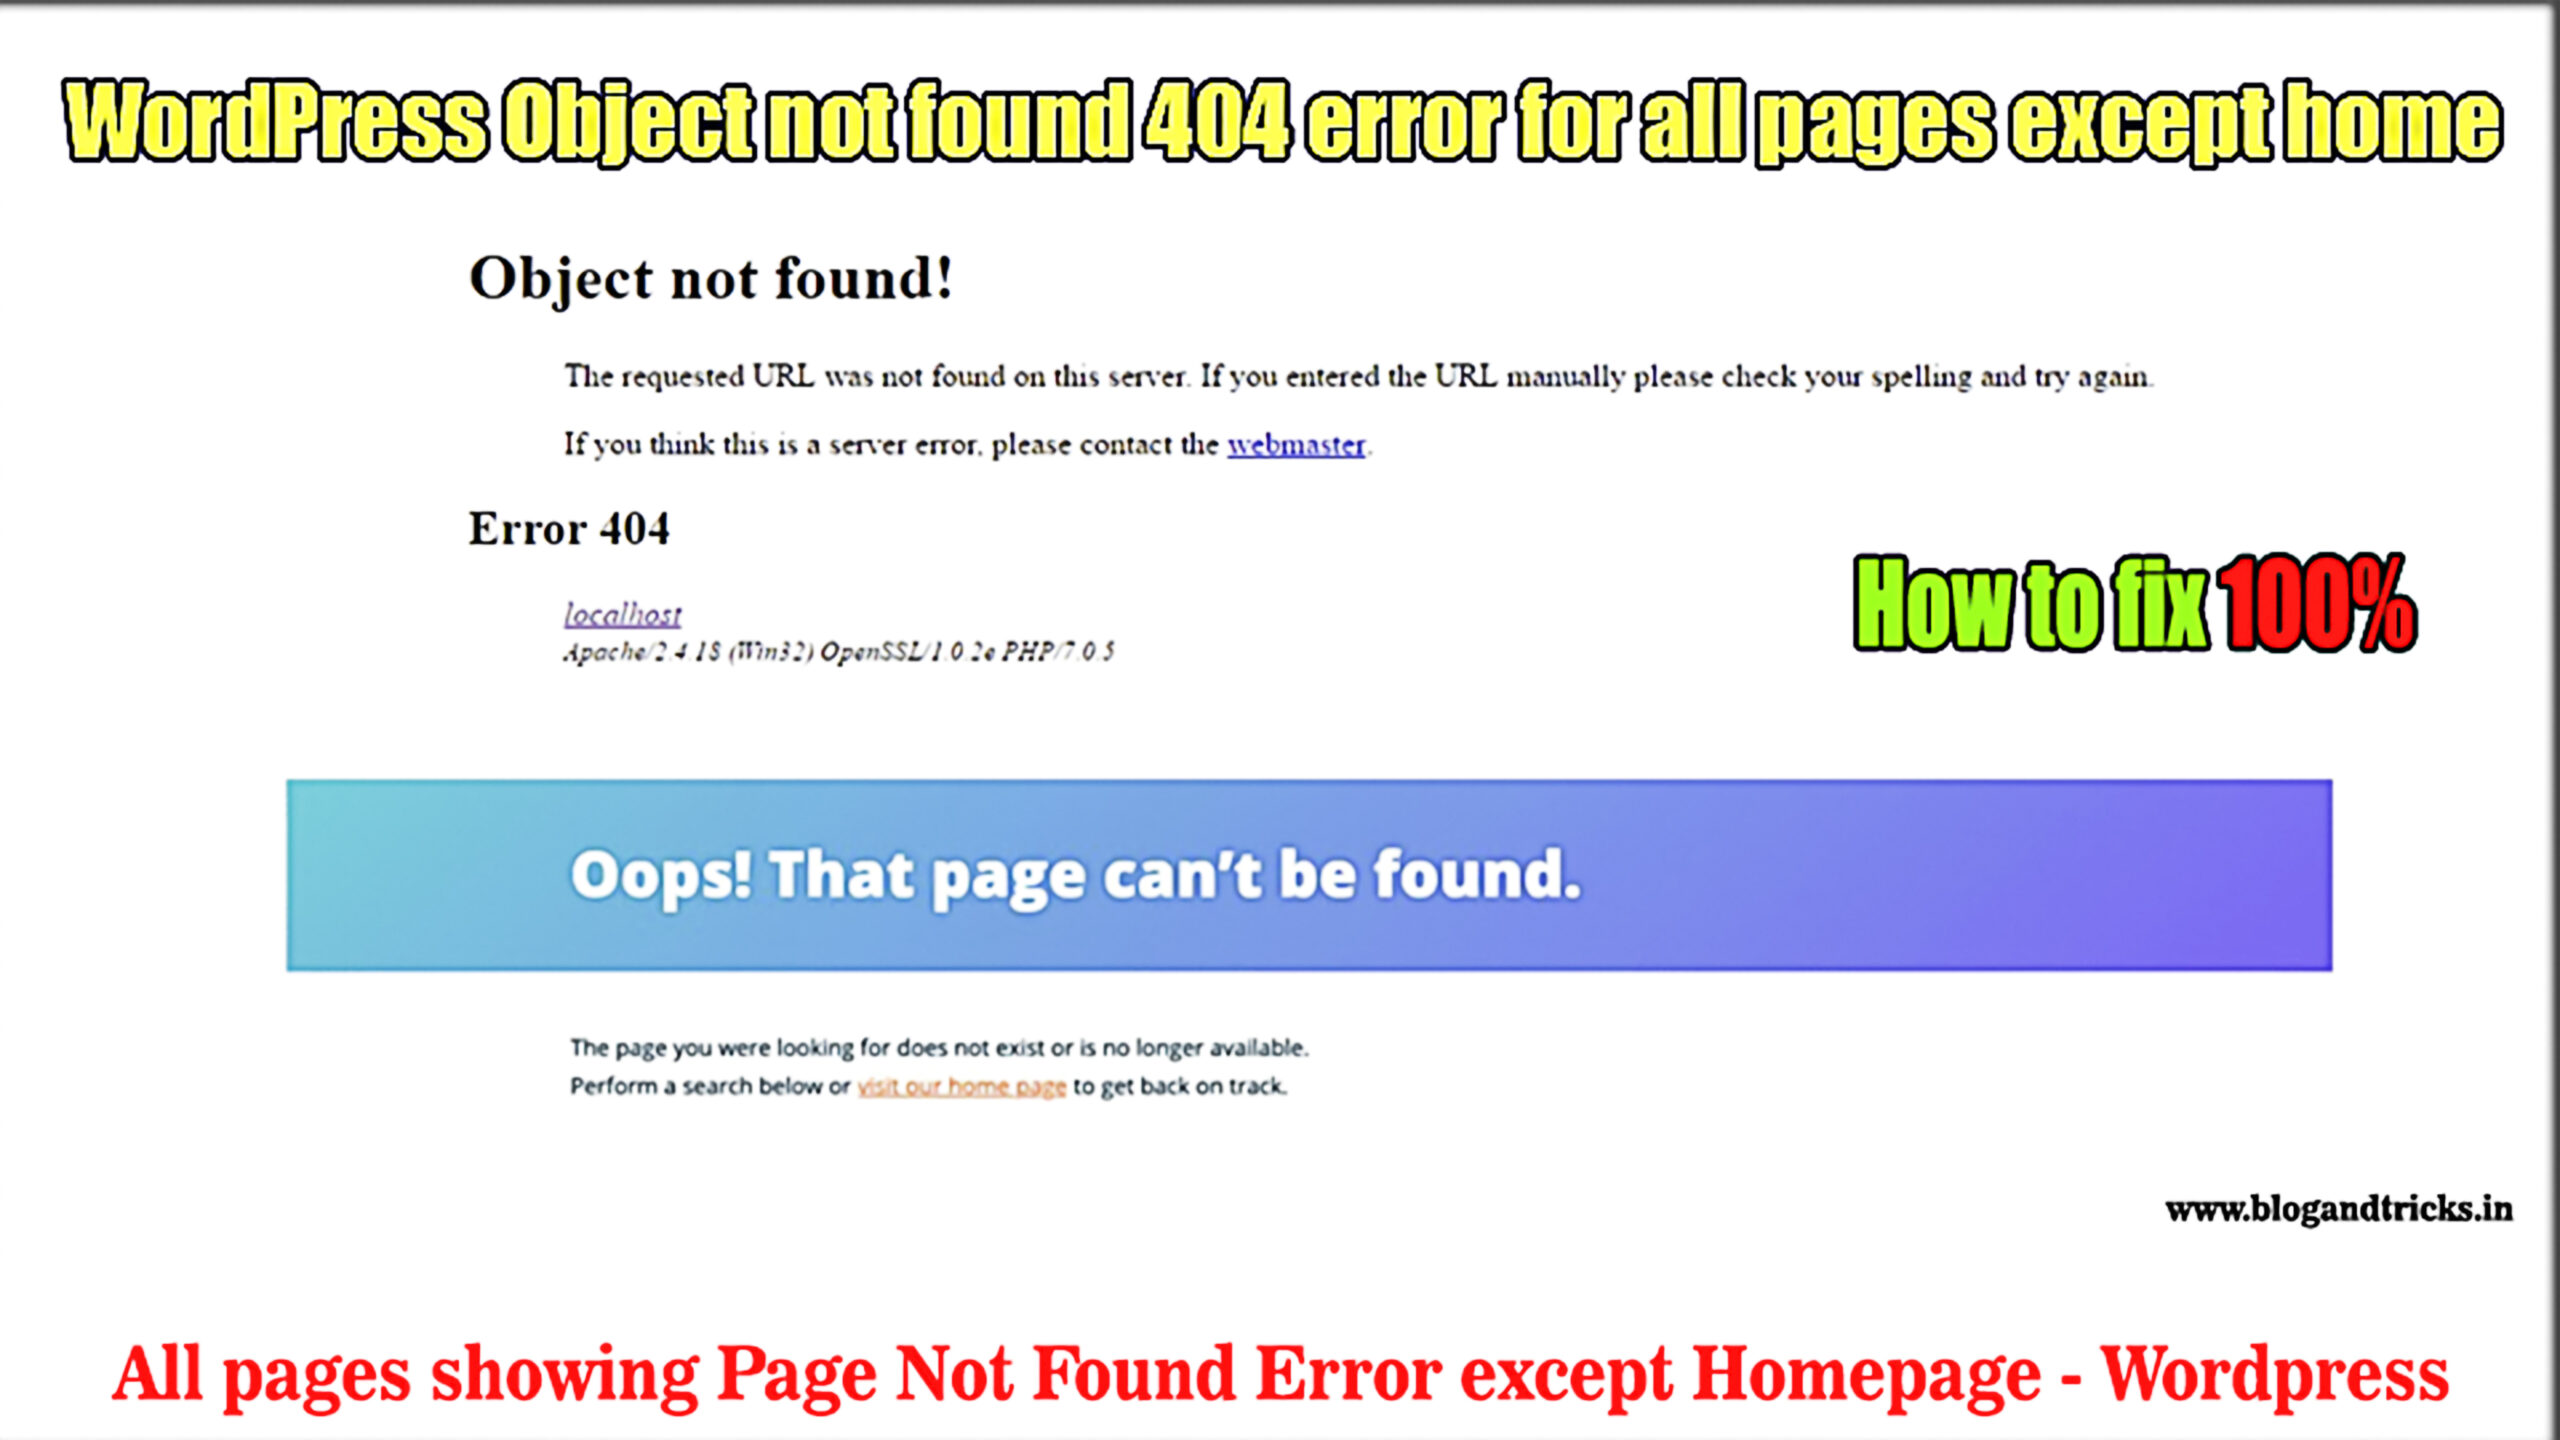 Object not found error 404 for all pages except homepage - wordpresstips